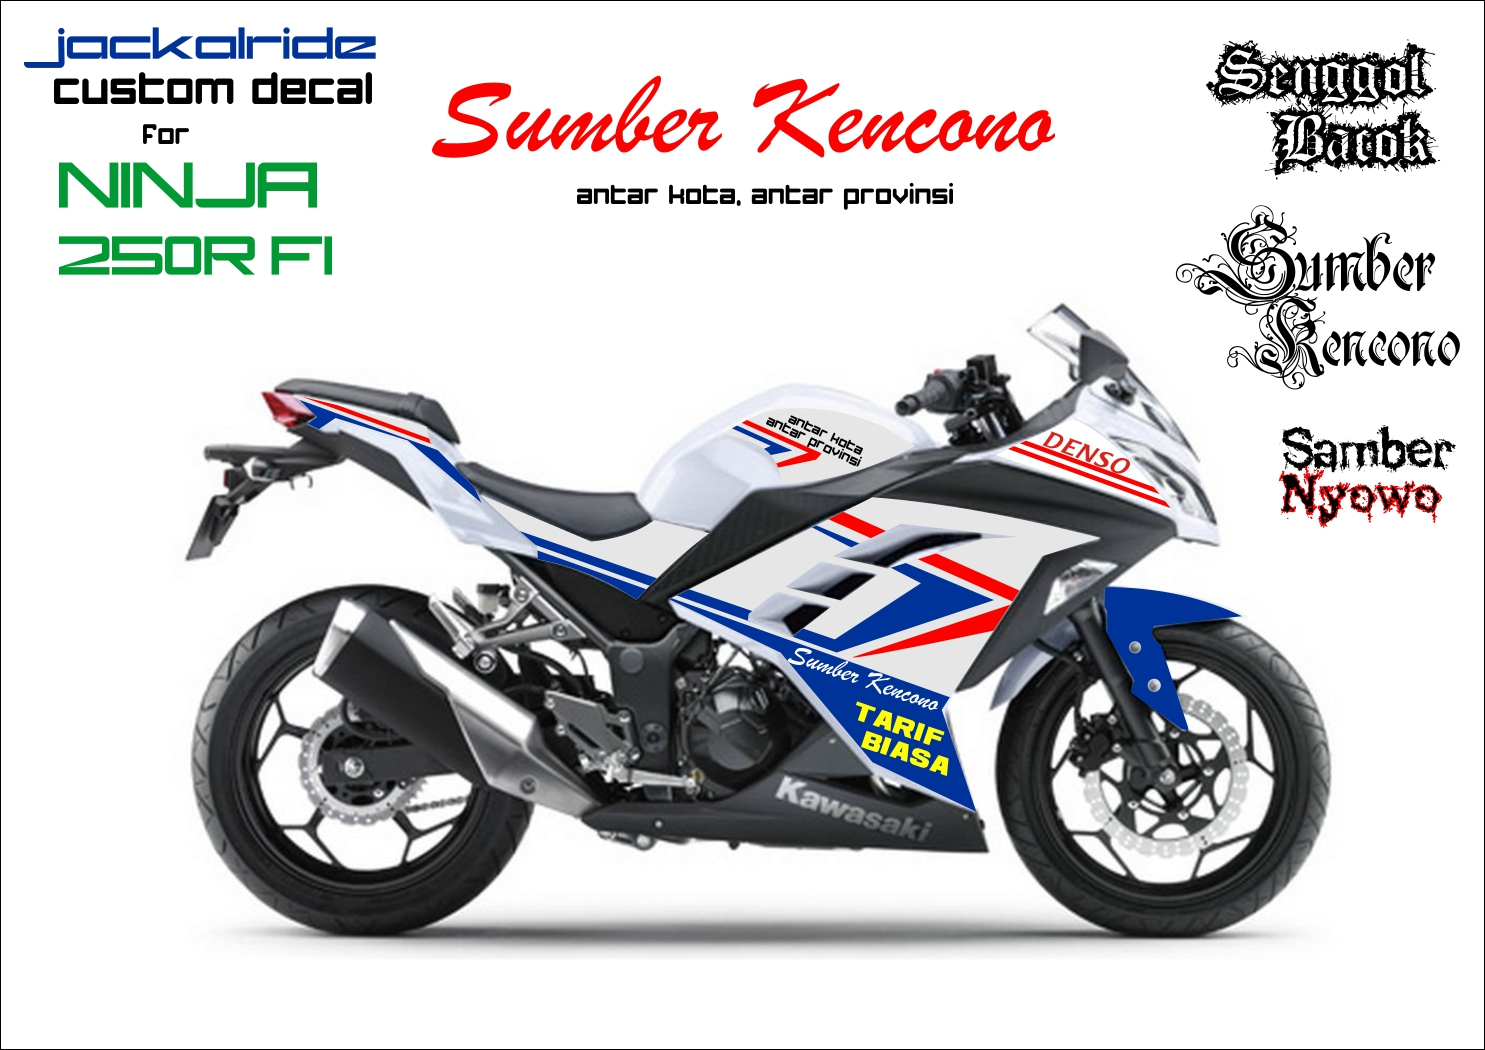 Custom decal for ninja 250 fi sumber kencono